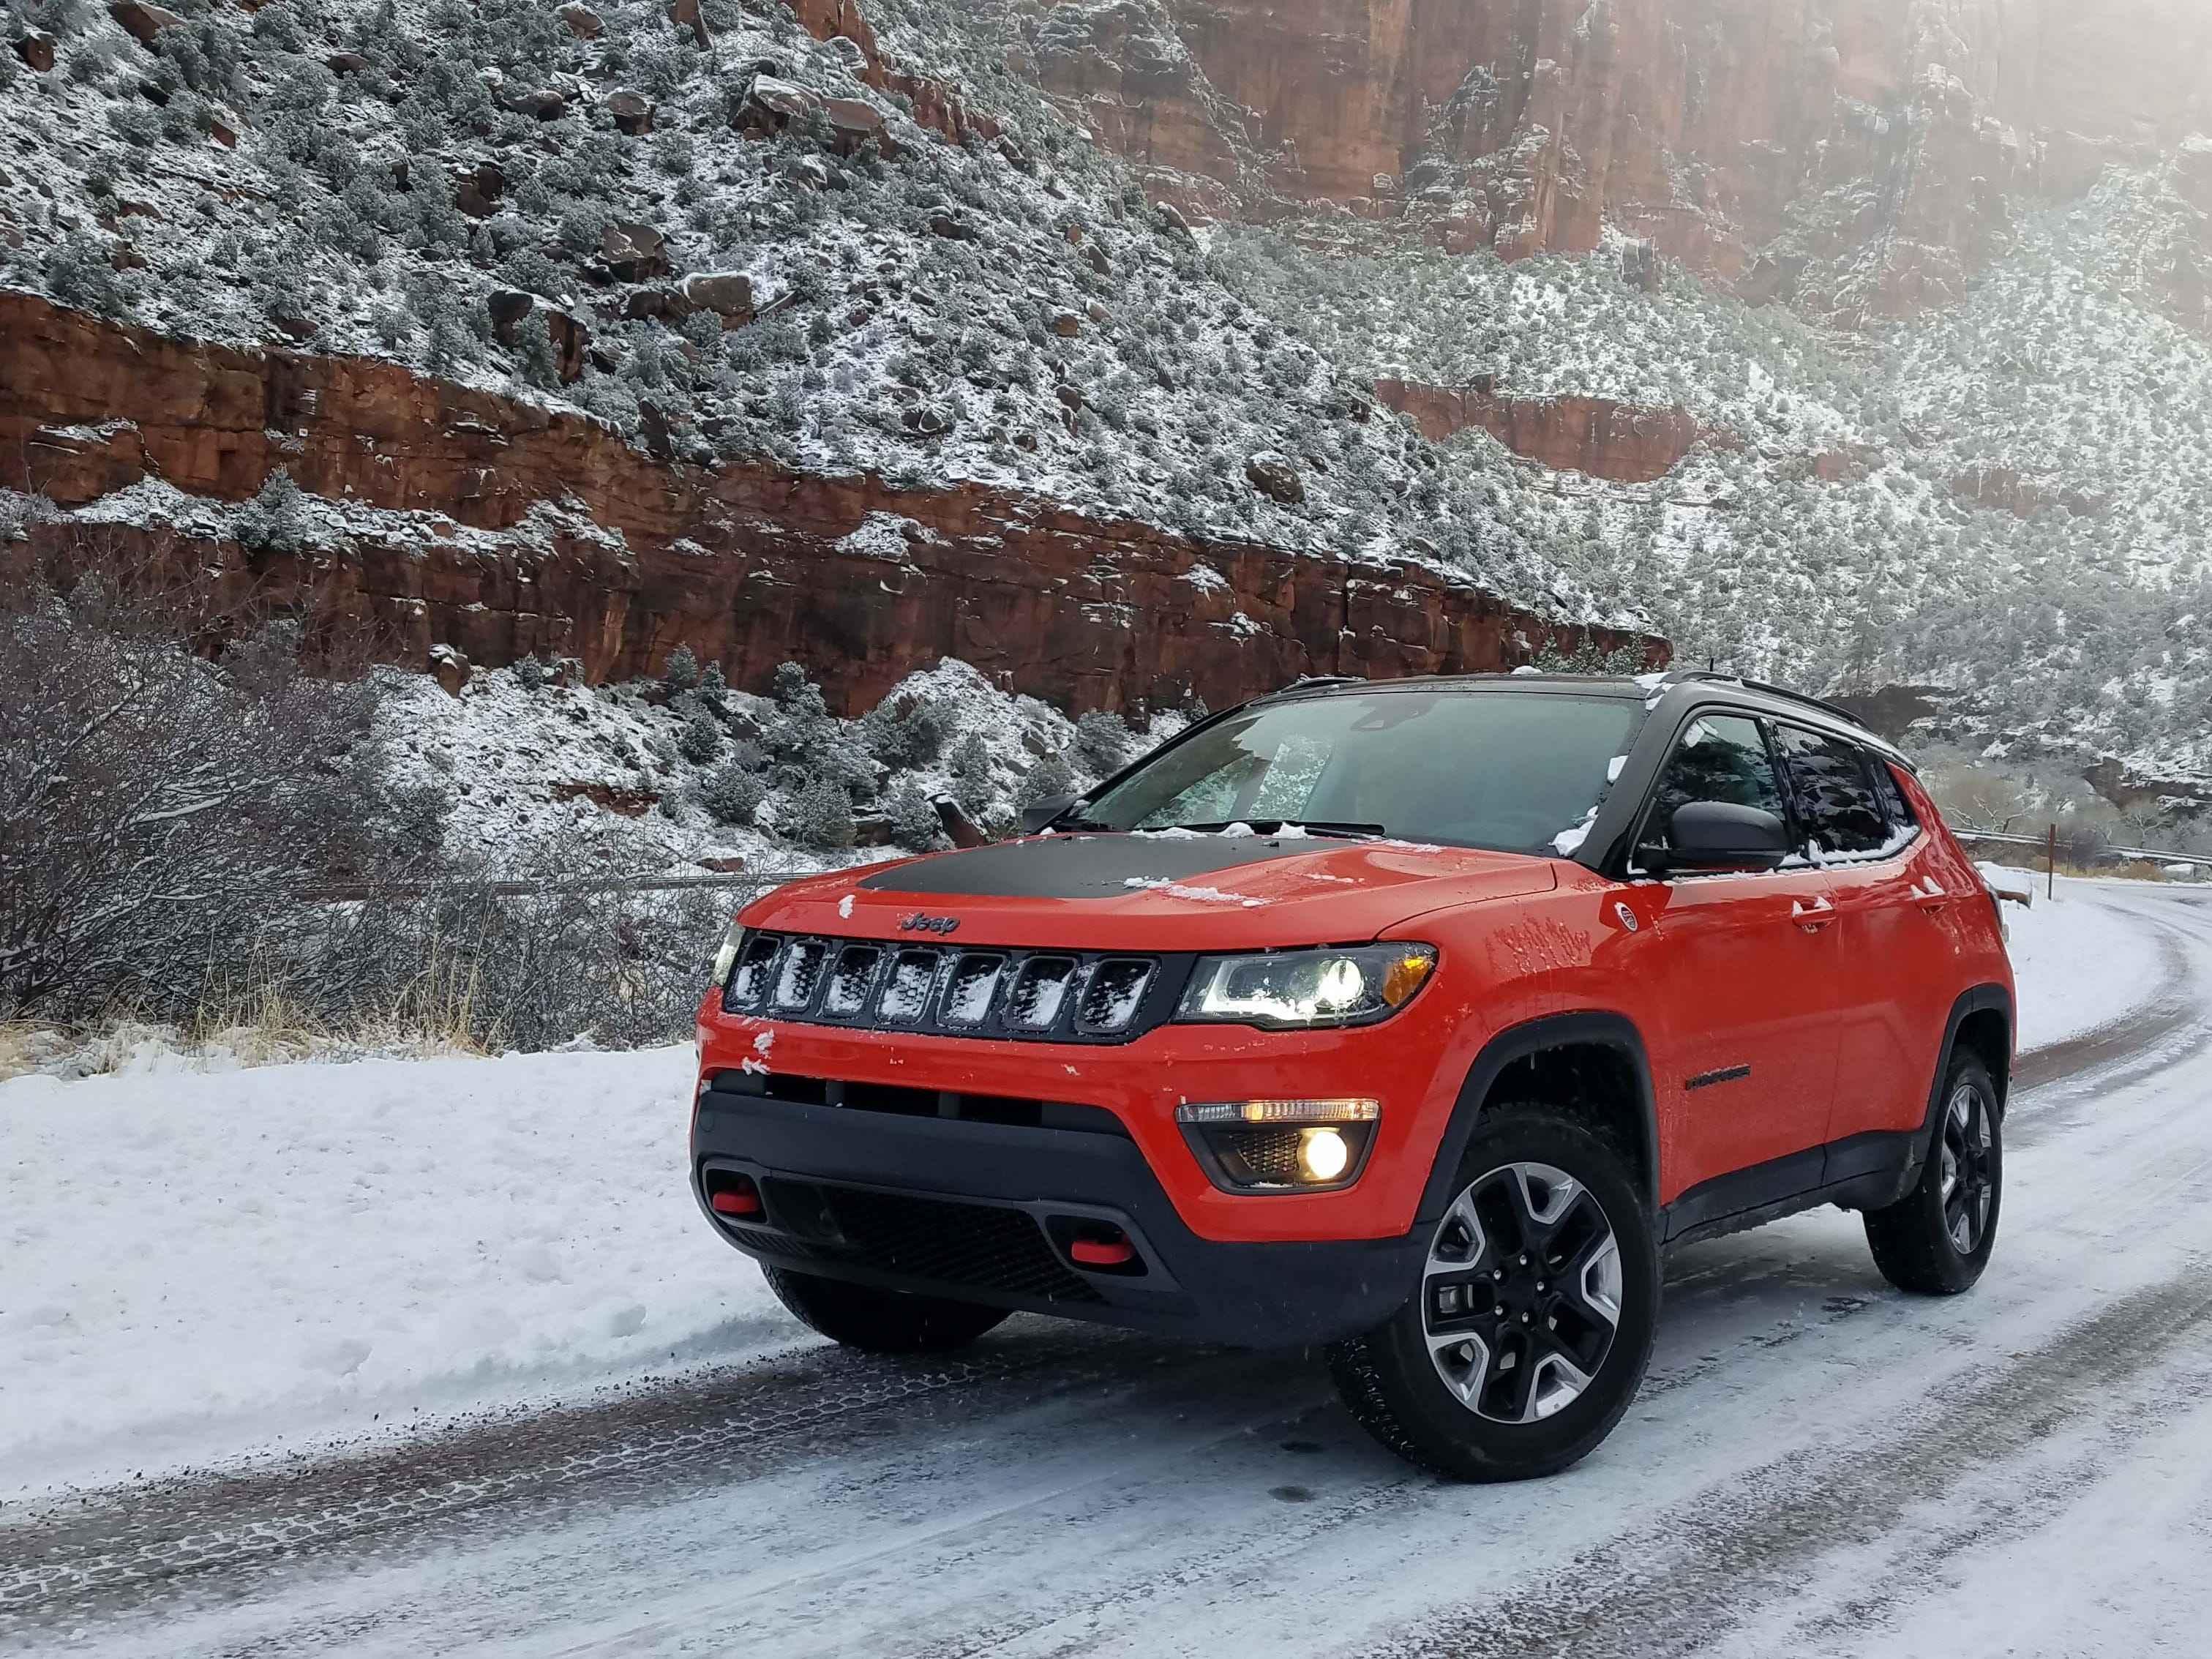 Jeep country: On icy, uphill Route 9 though the Zion Canyon pass, the Jeep Compass Trailhawk never put a foot wrong.